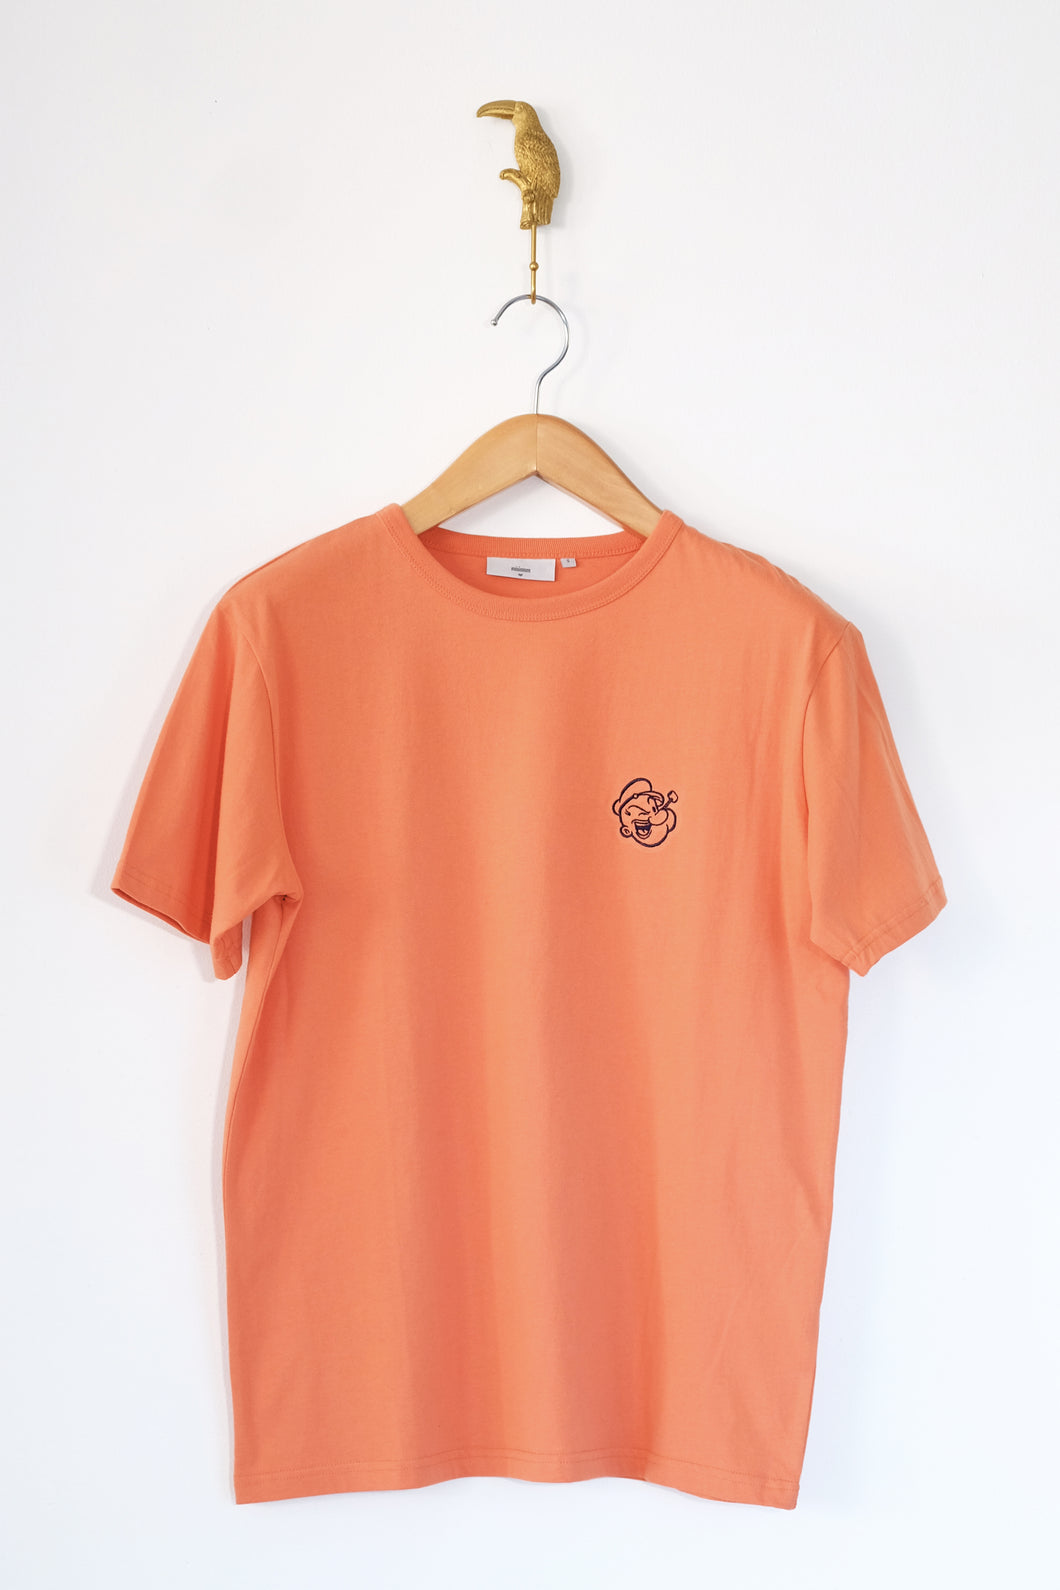 T-shirt orange Minimum